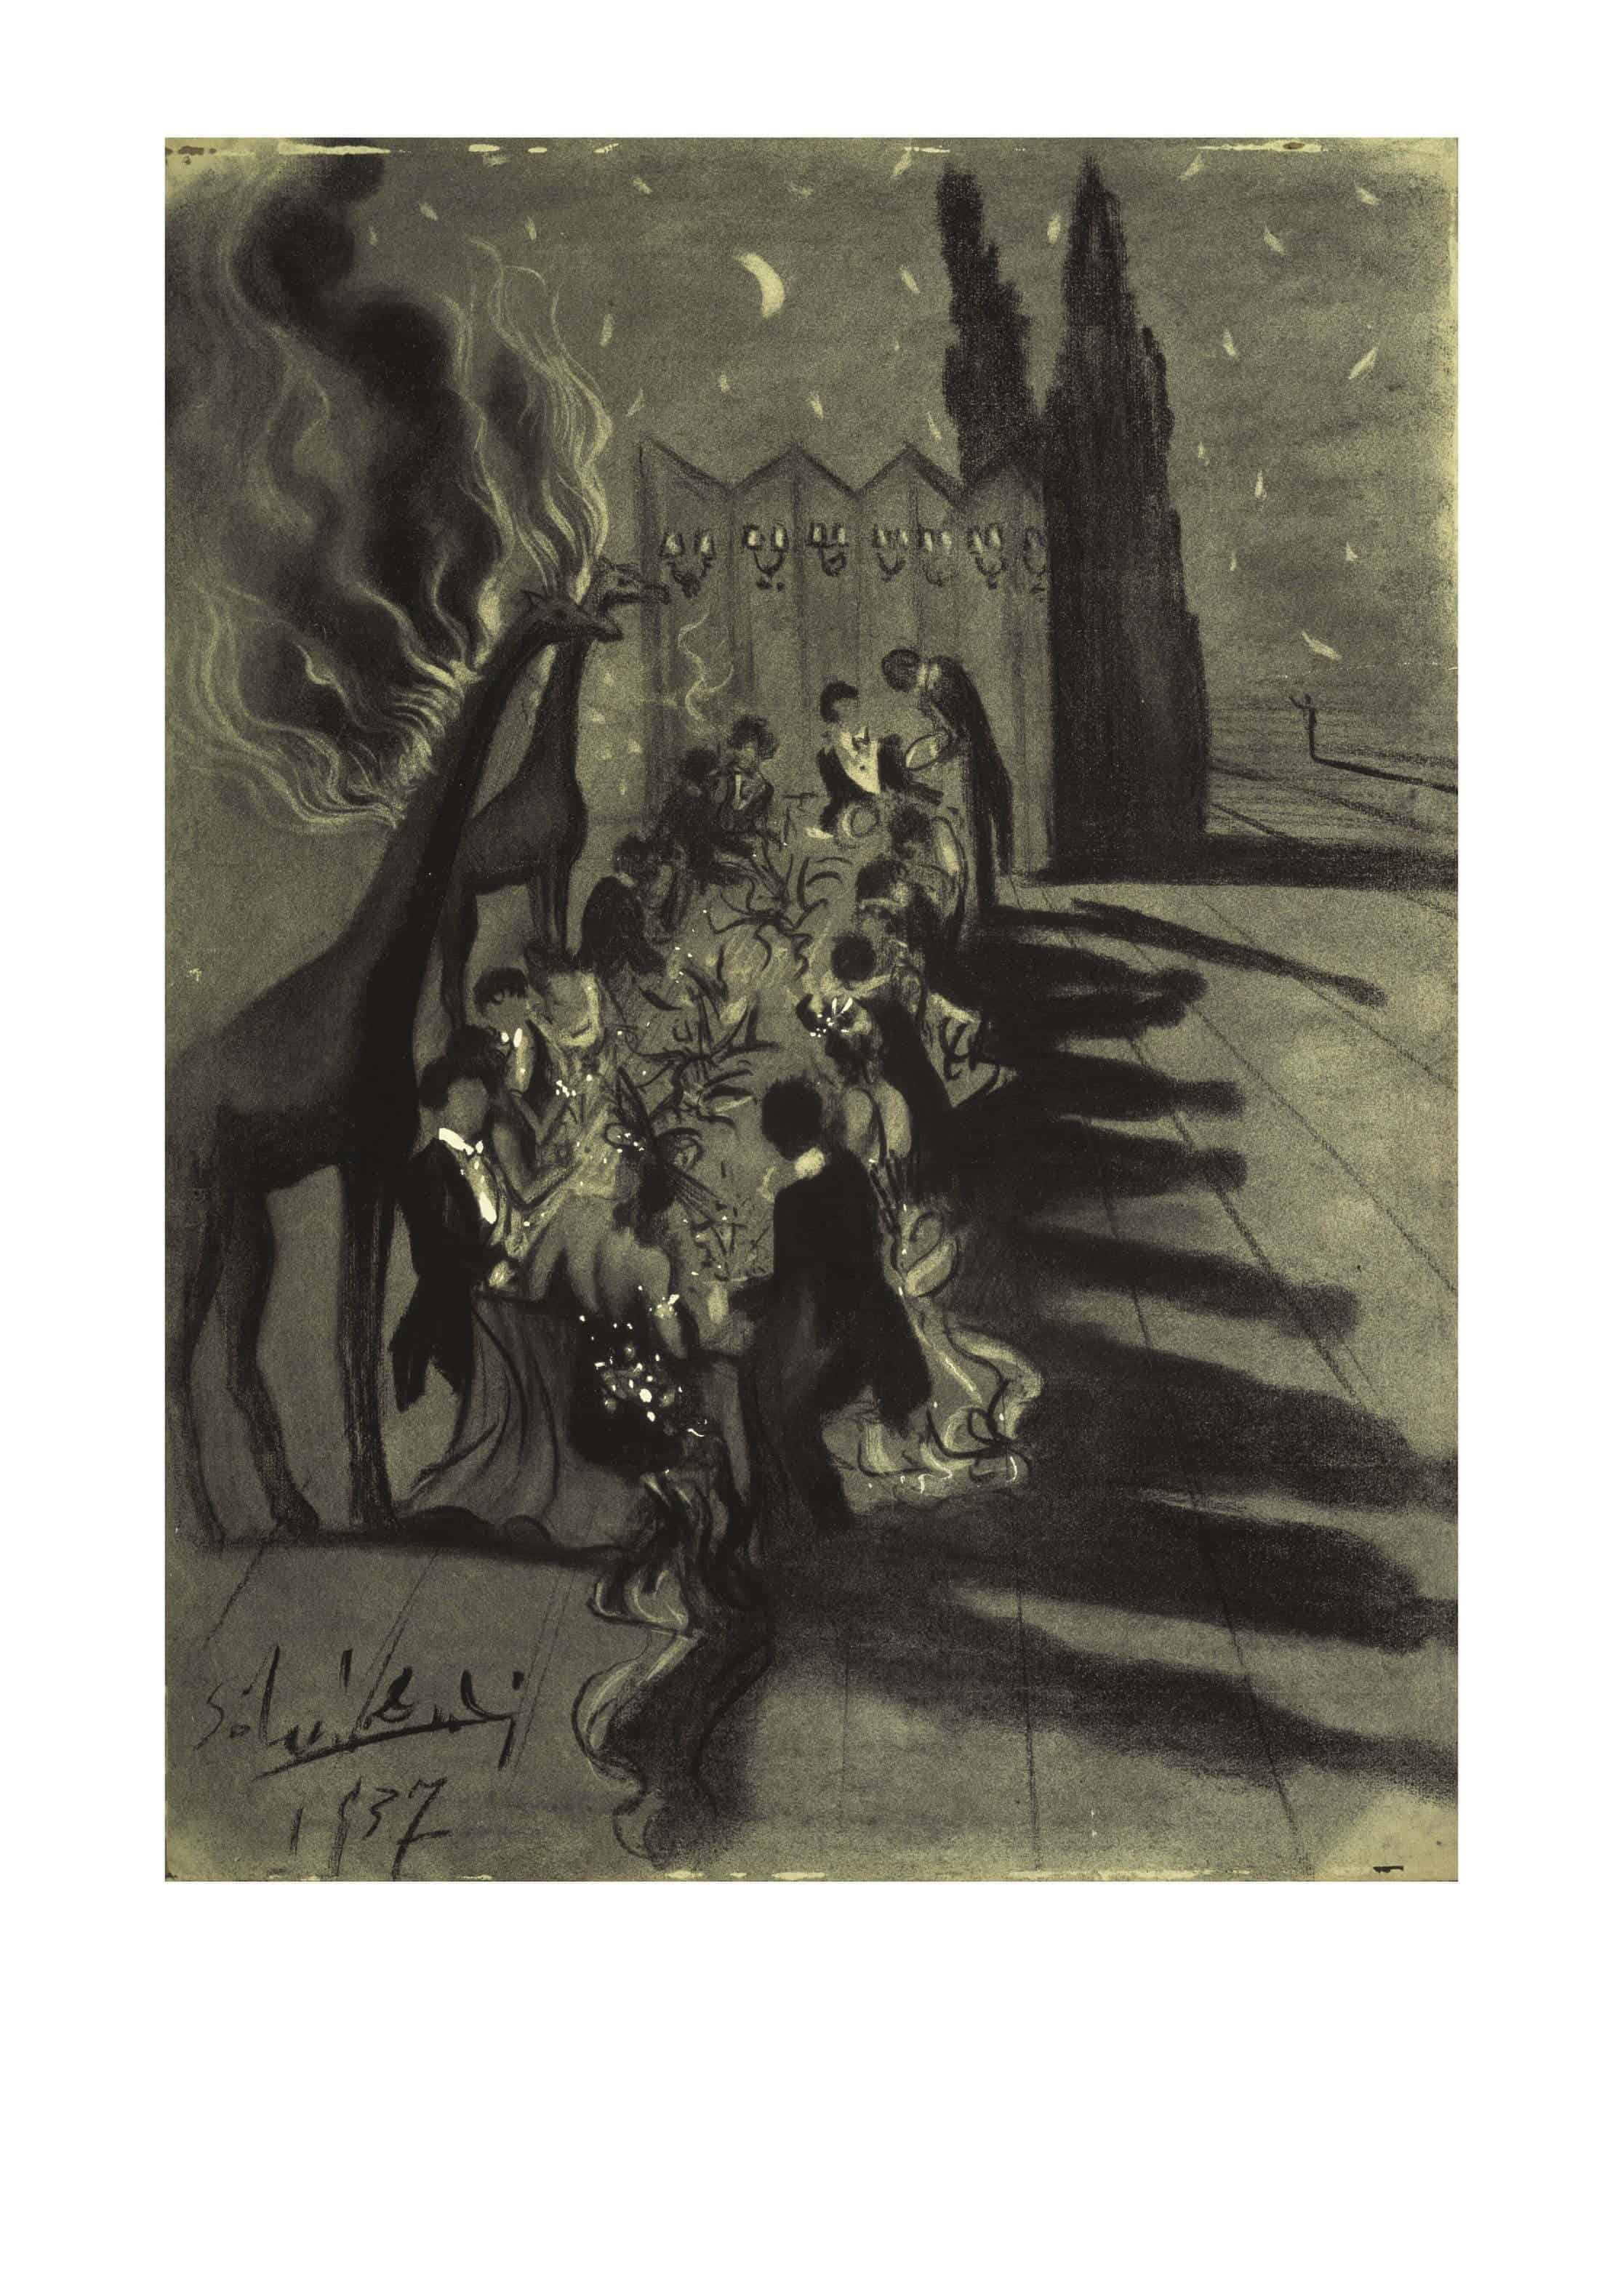 Salvador DALÍ Dinner in the Desert lit by Burning Giraffes Dîner dans le désert éclairé par les girafes en feu Avondmaal in de woestijn verlicht door brandende giraffen 1937 Charcoal on paper 61,5 x 45,7 cm Collection of The Dali Museum, St. Petersburg FL © Salvador Dalí, Fundació Gala-Salvador Dalí, (corresponding Rights Society), 2019